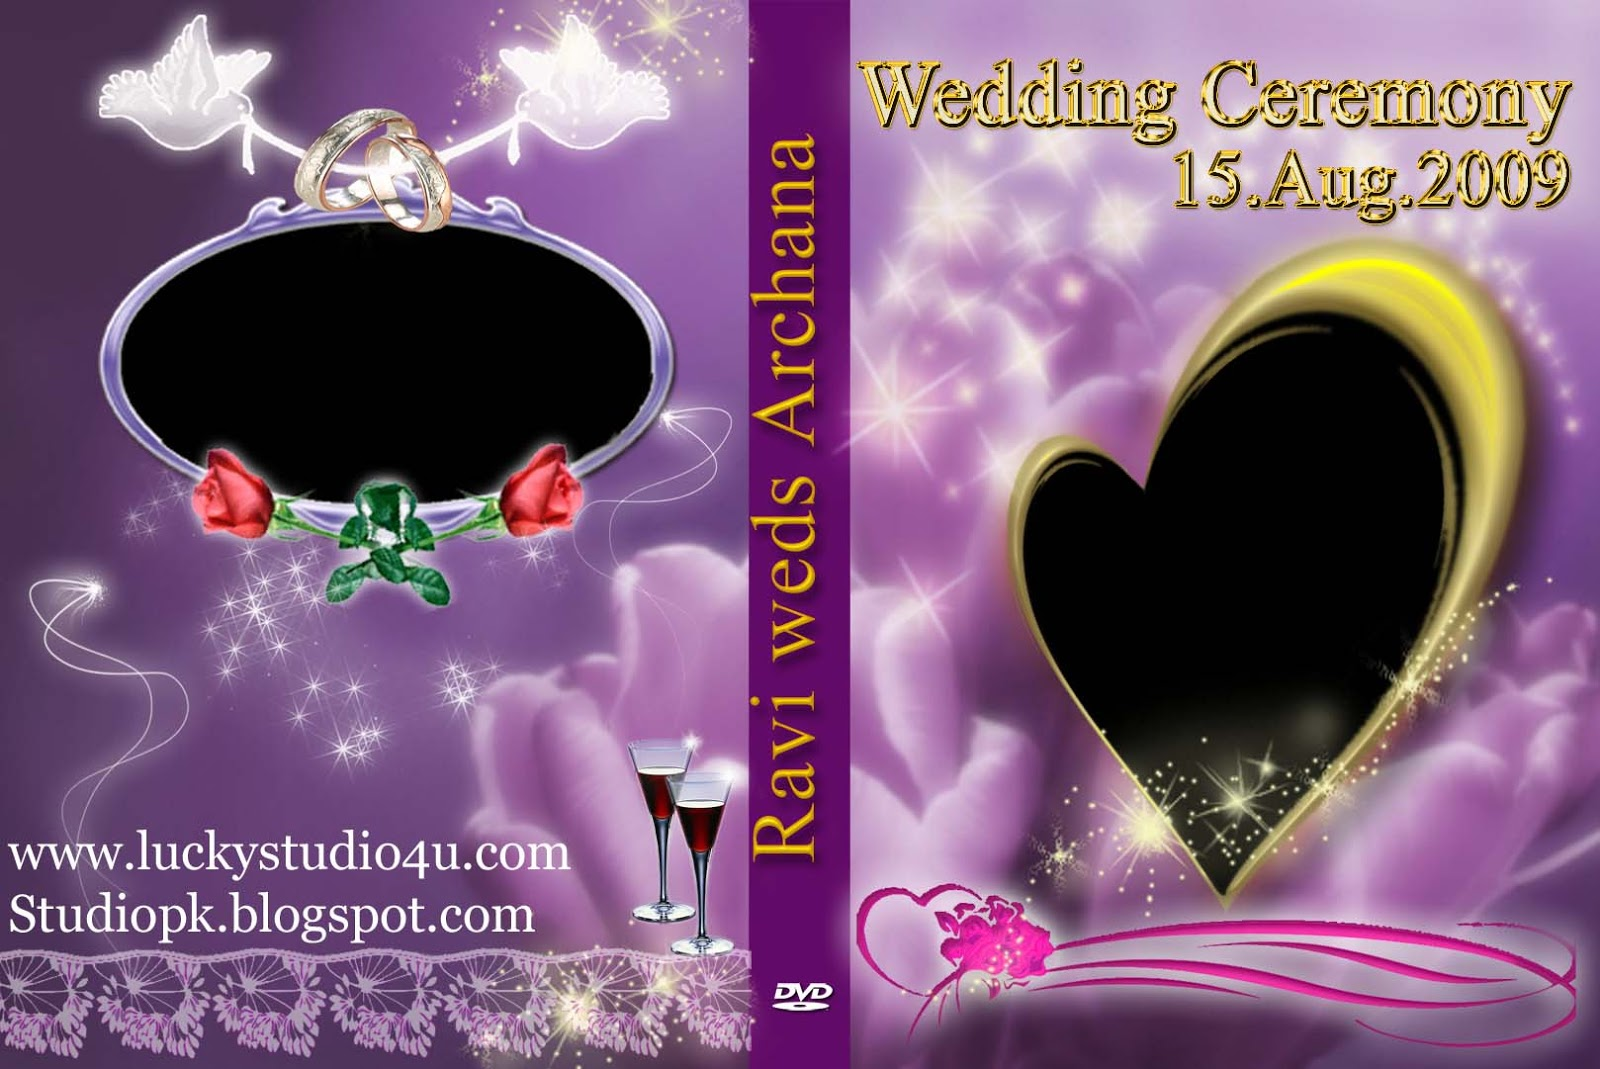 27 Wedding DVD Cover Psd Templates Free Download - StudioPk